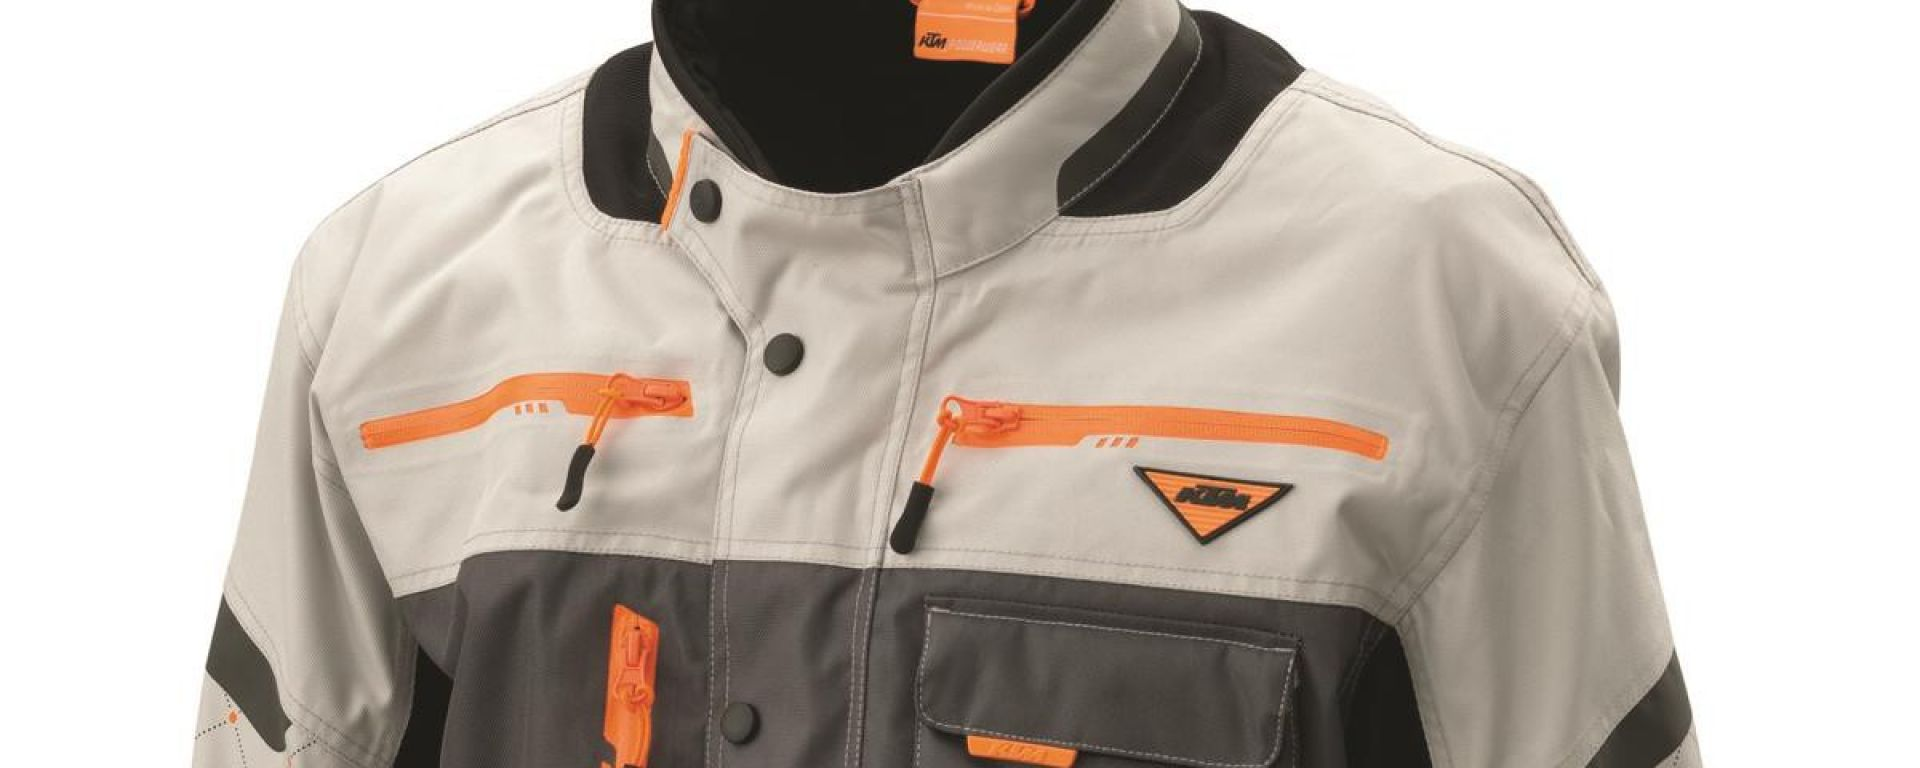 Giacca Defender Offroad - 259 euro